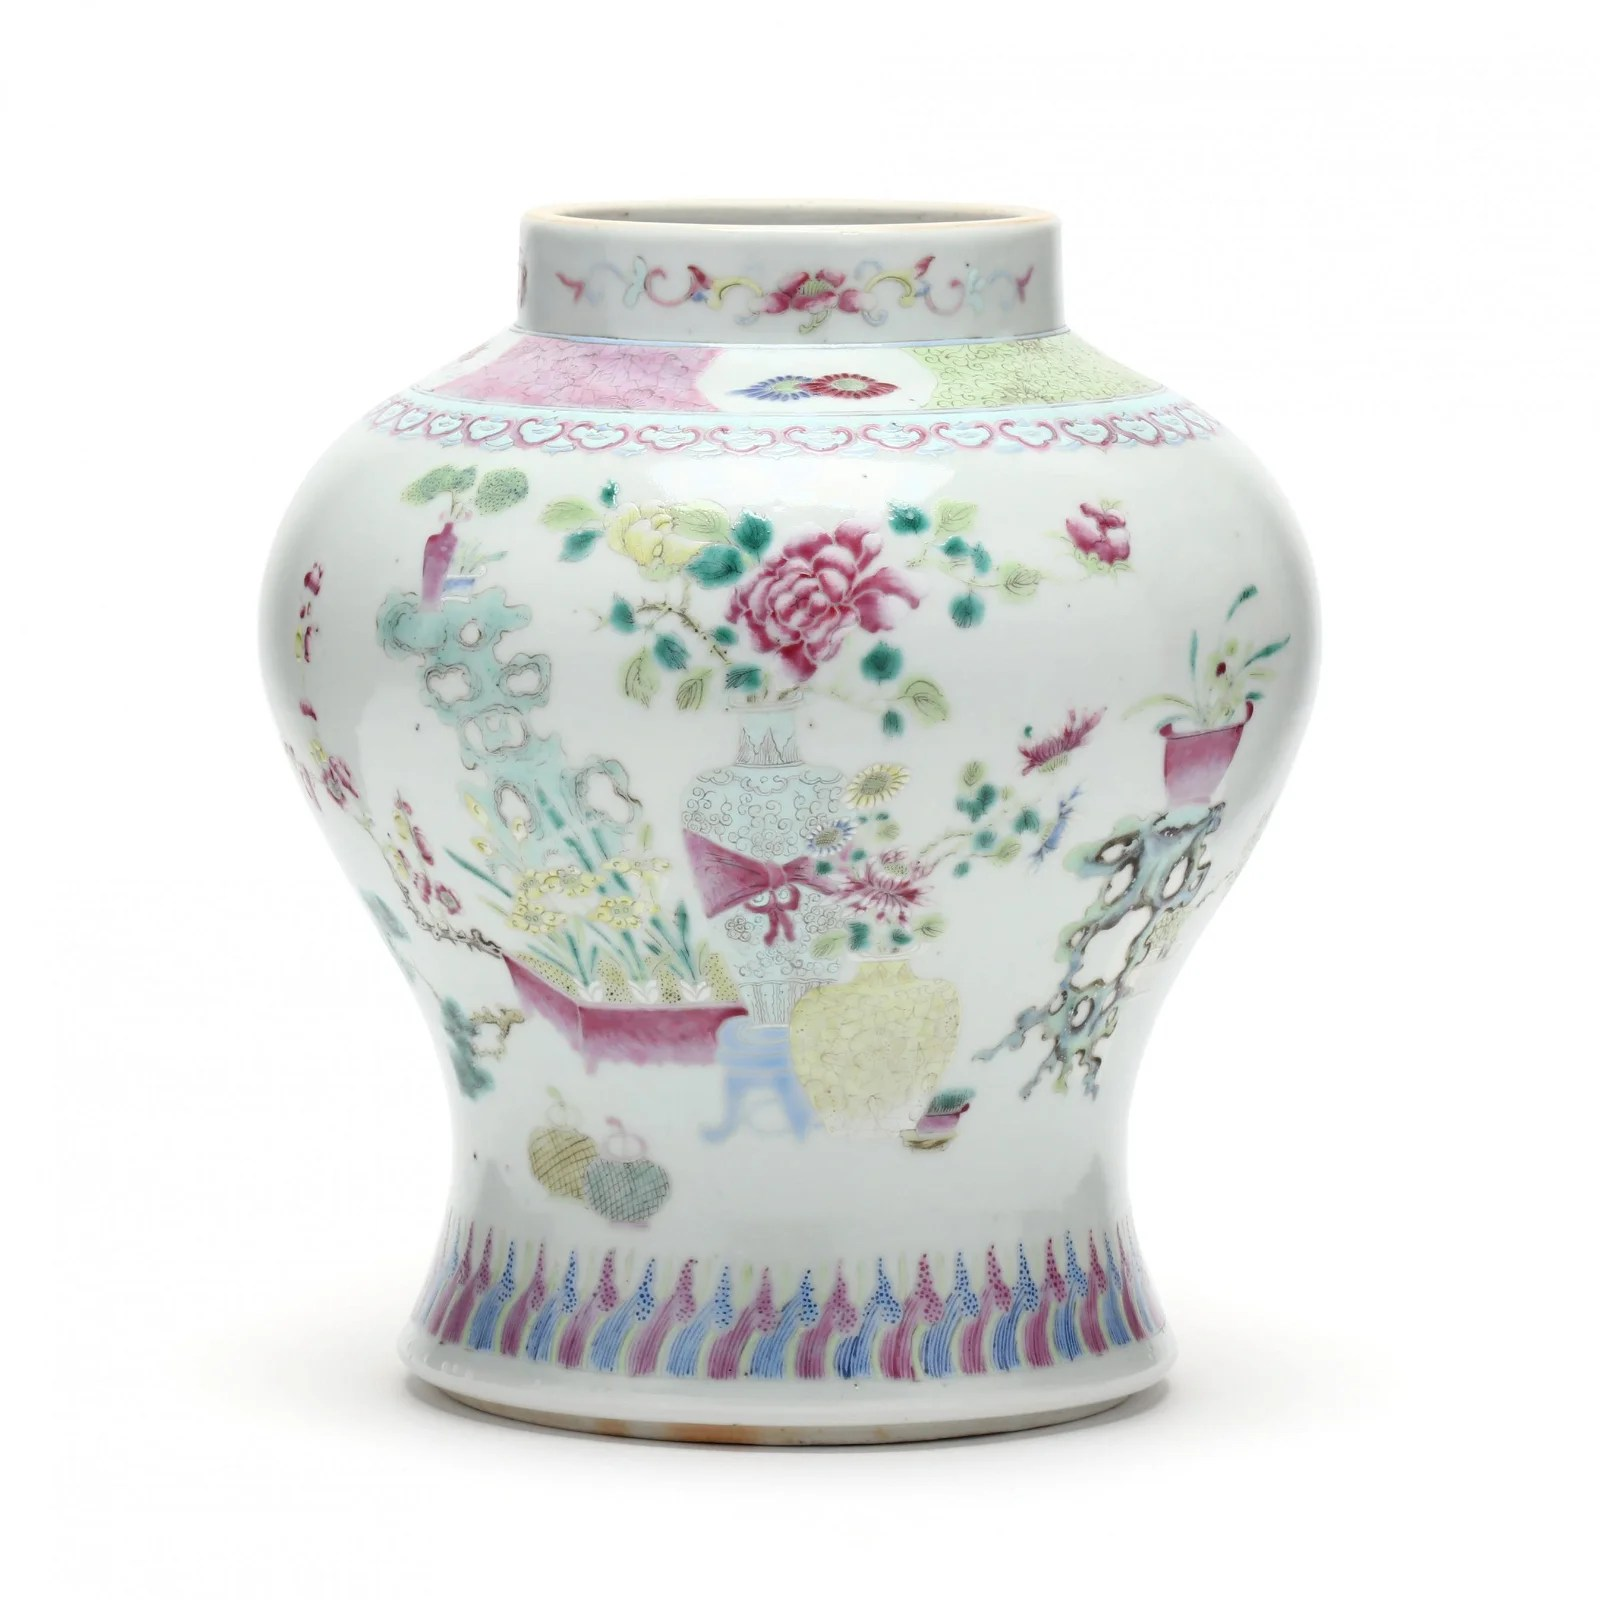 A Chinese Qing Dynasty Porcelain Vase